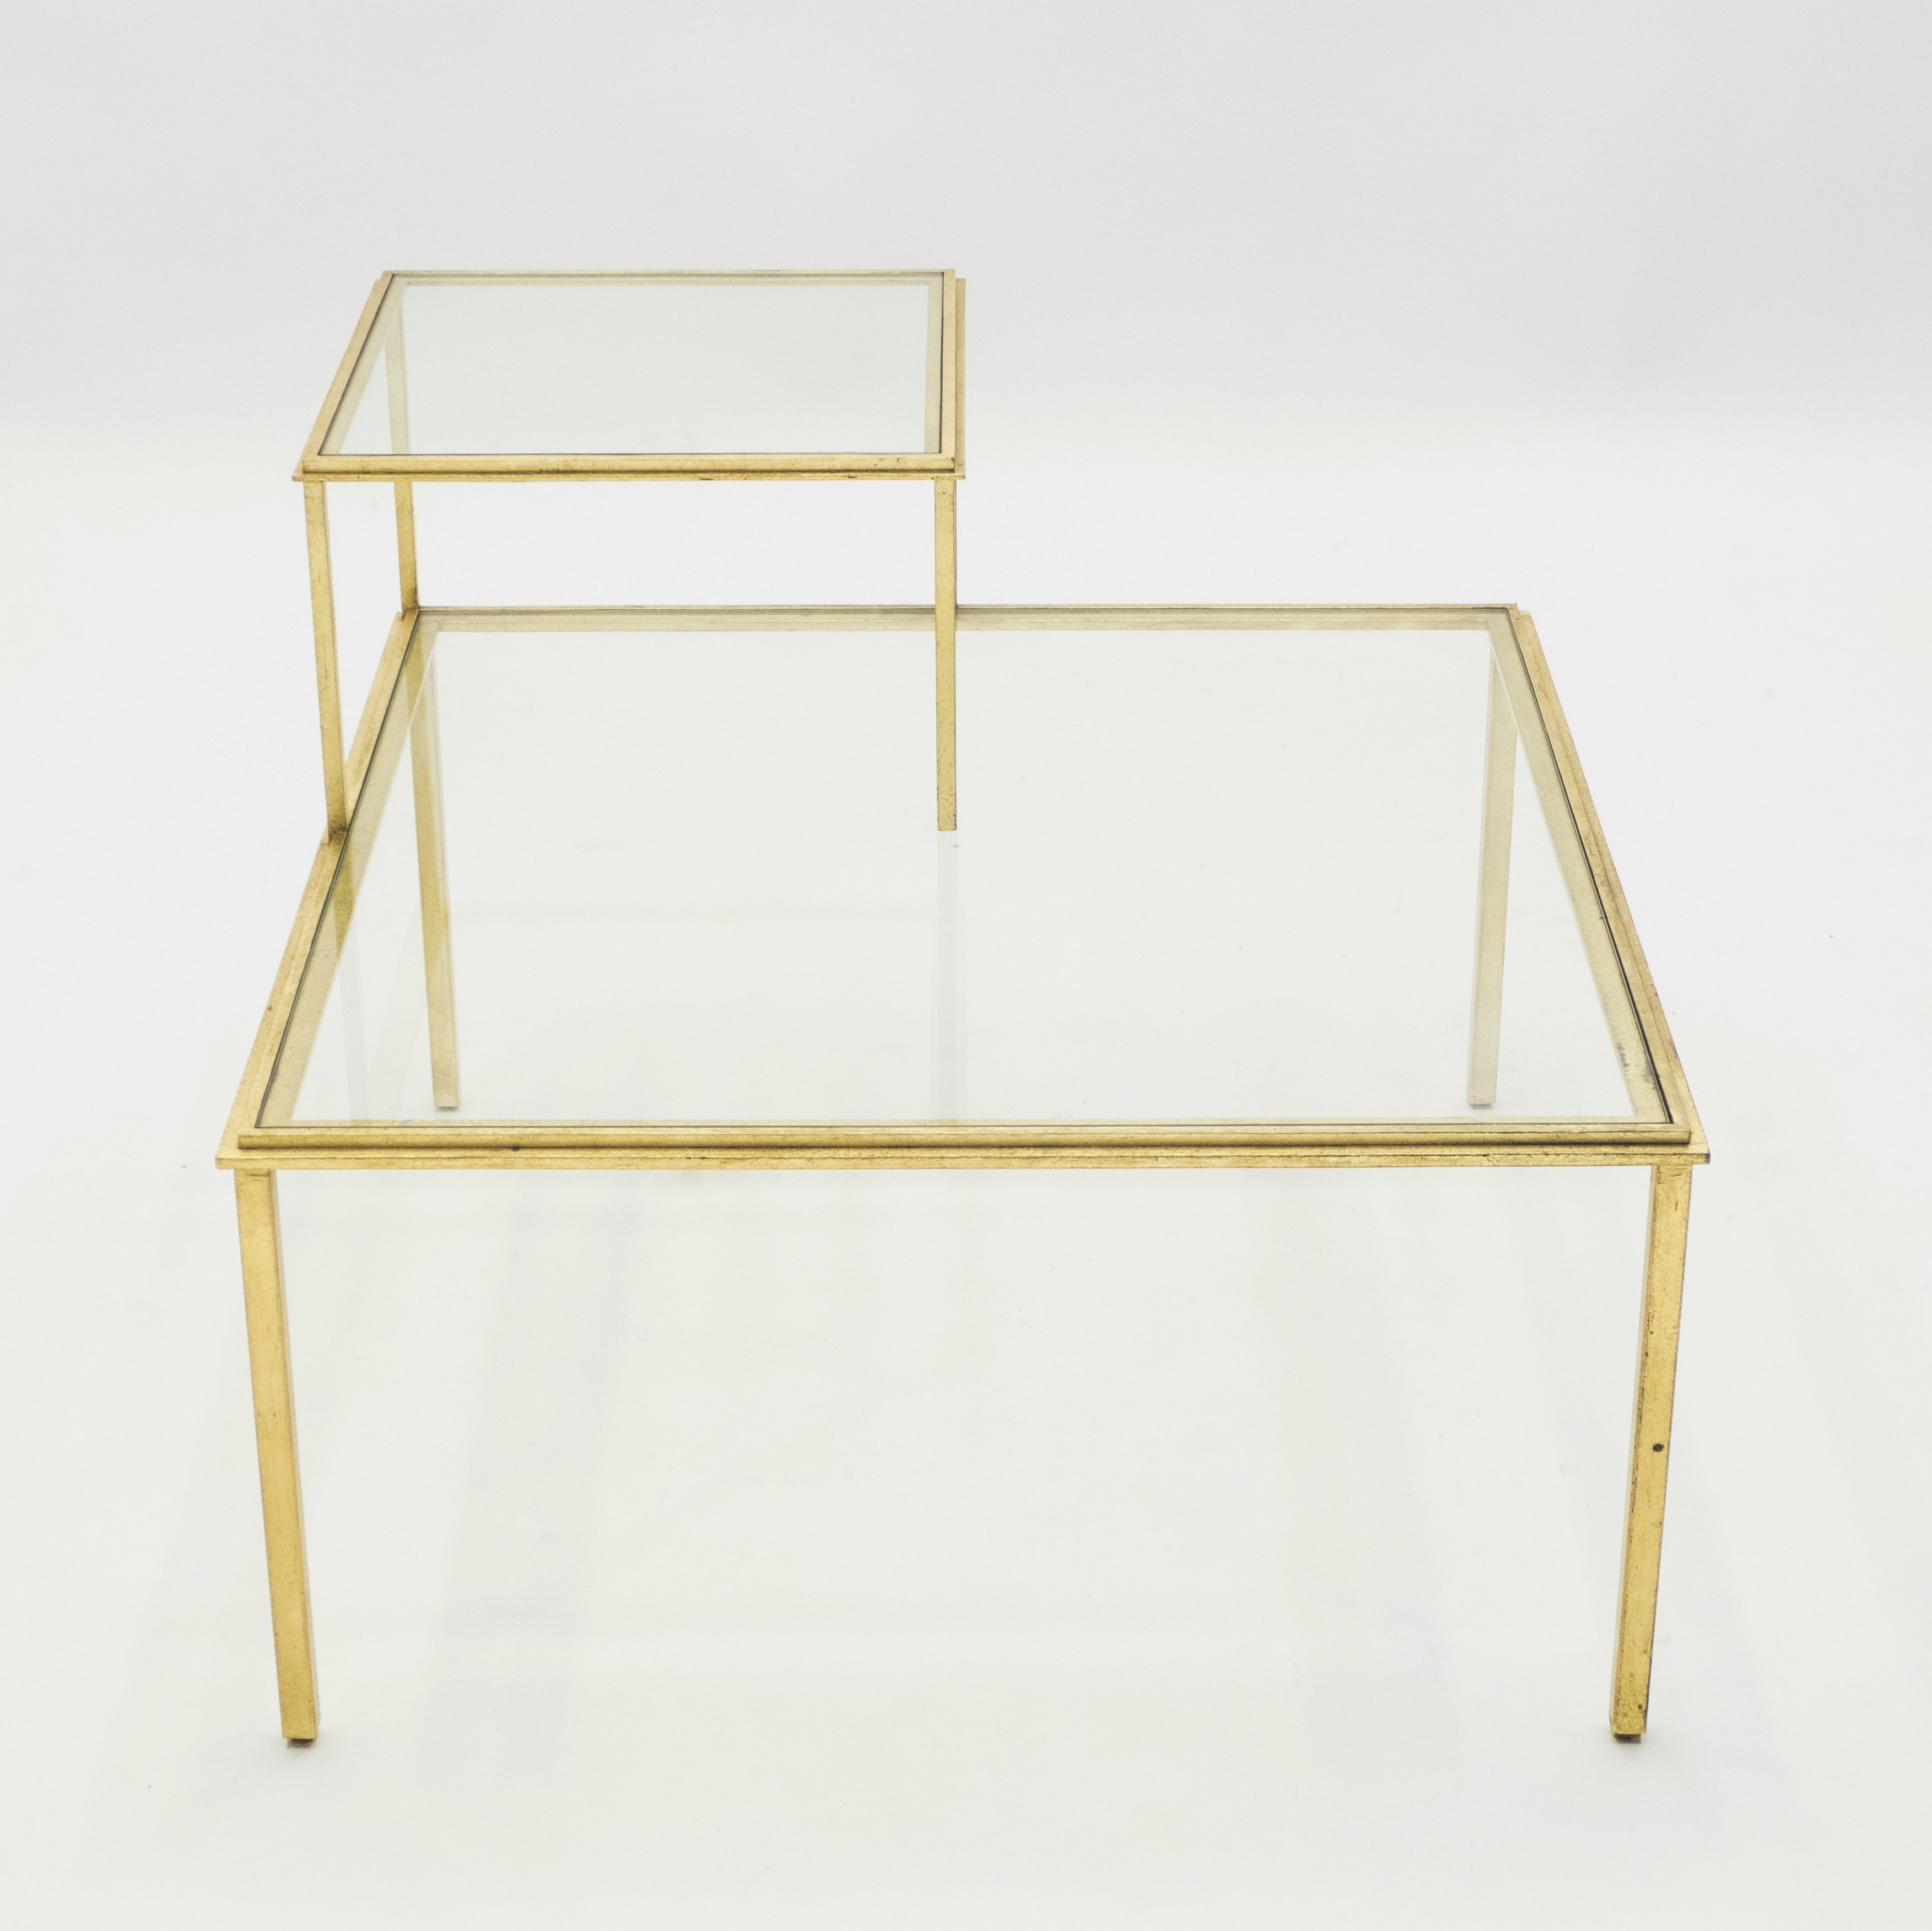 - Roger Thibier Gilt Wrought Iron & Glass Coffee End Table, 1960s